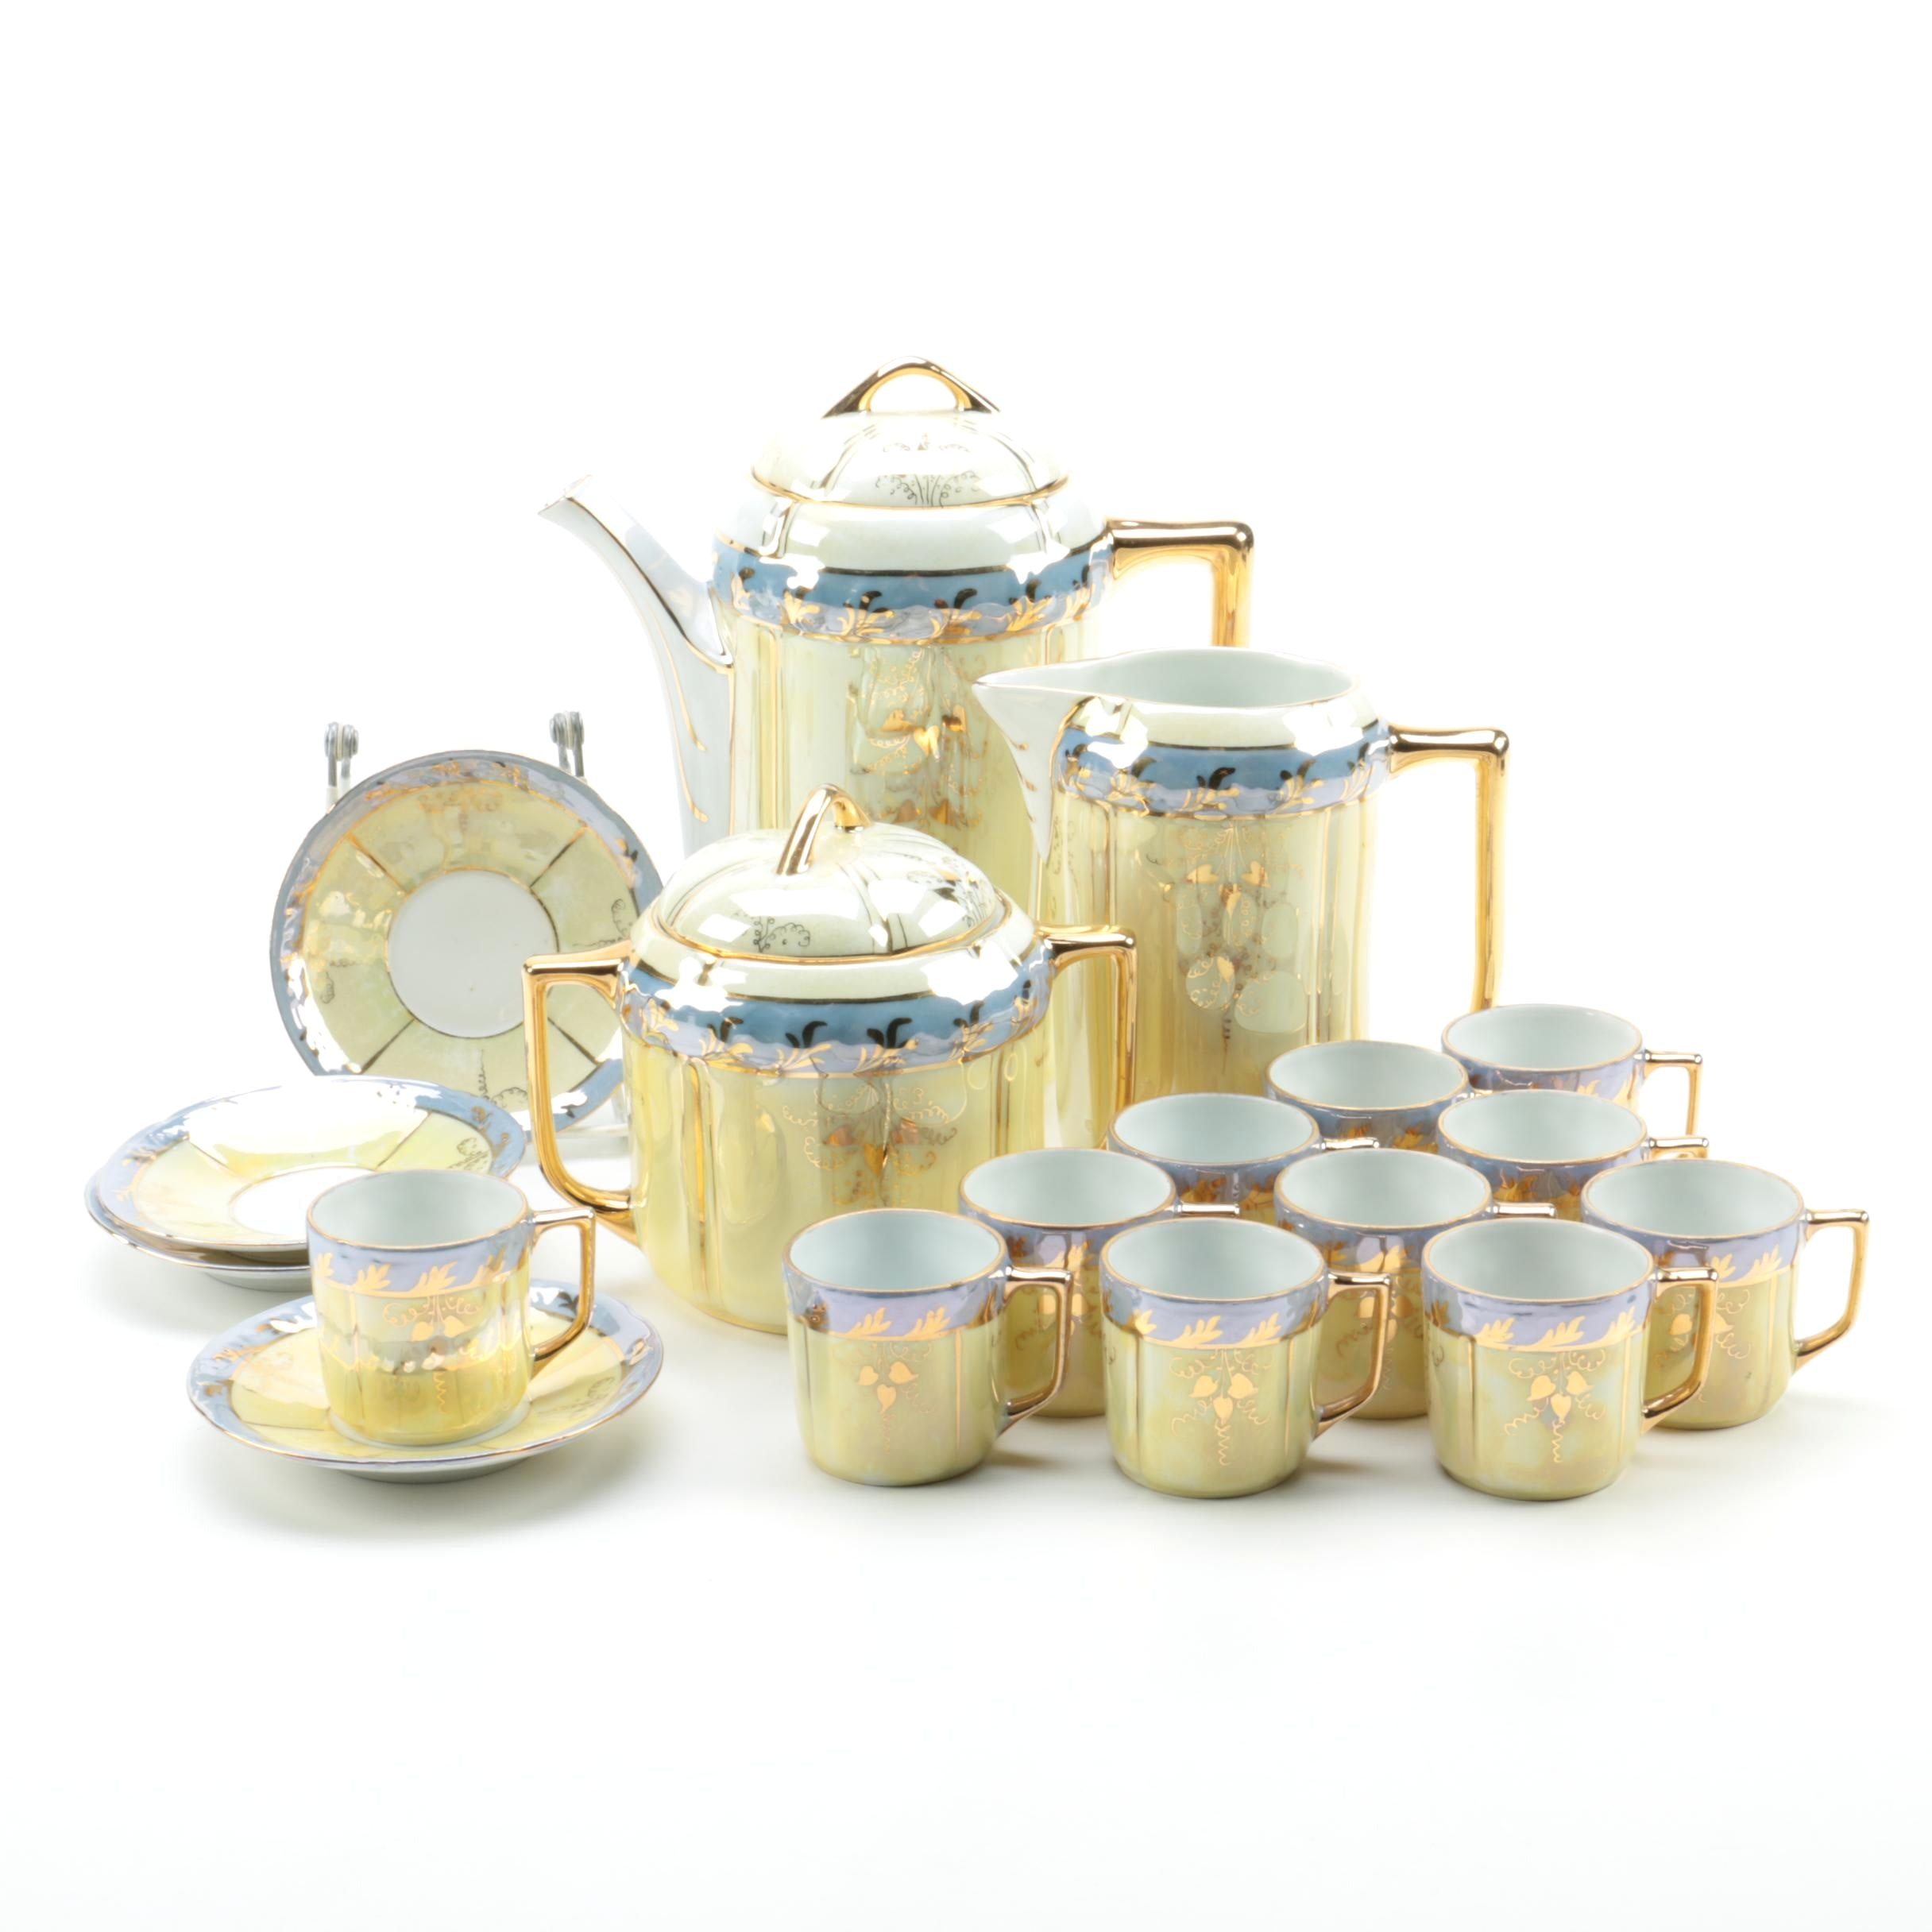 SCH Handmalerei Lusterware Tea Set